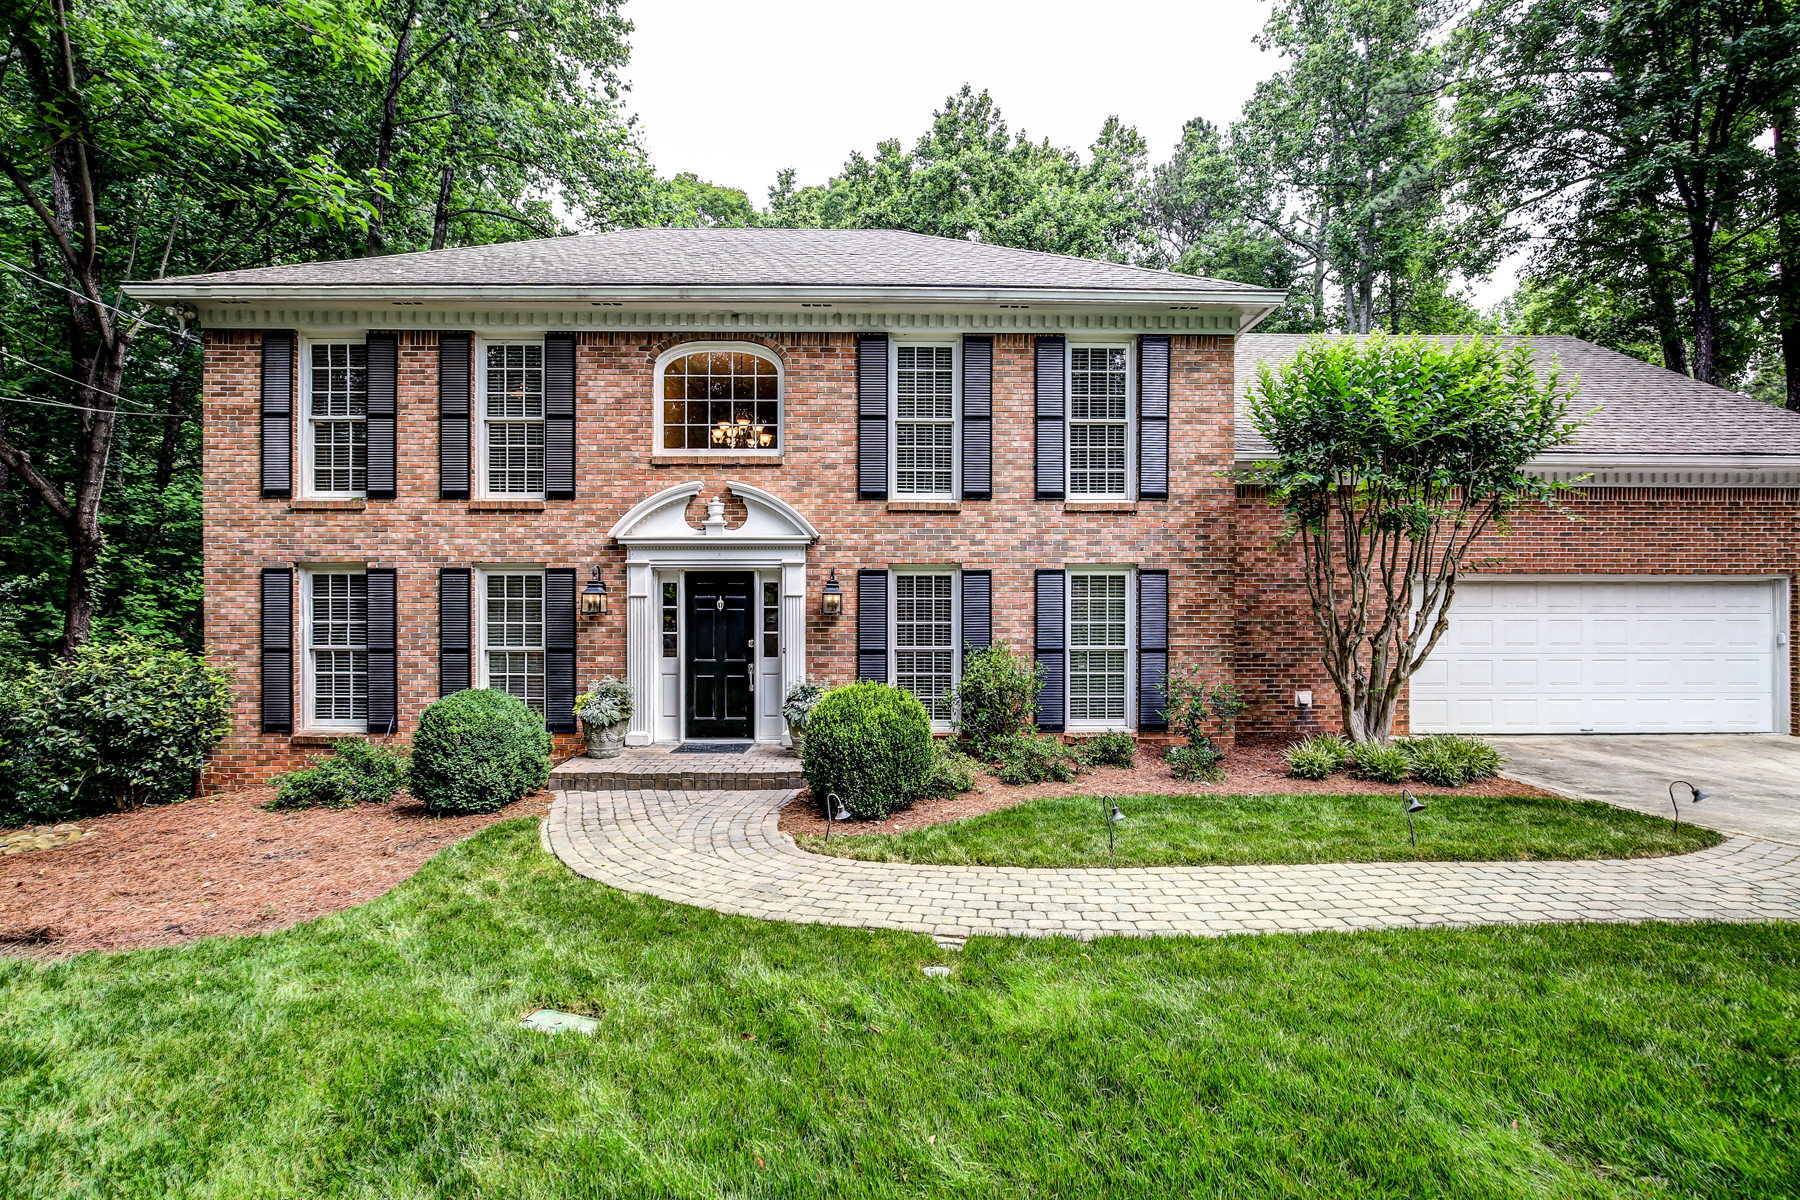 Single Family Home for Sale at Gorgeous, Move-in Ready Chastain Park Cul-de-sac Home 85 Tall Pines Court Chastain Park, Atlanta, Georgia, 30327 United States